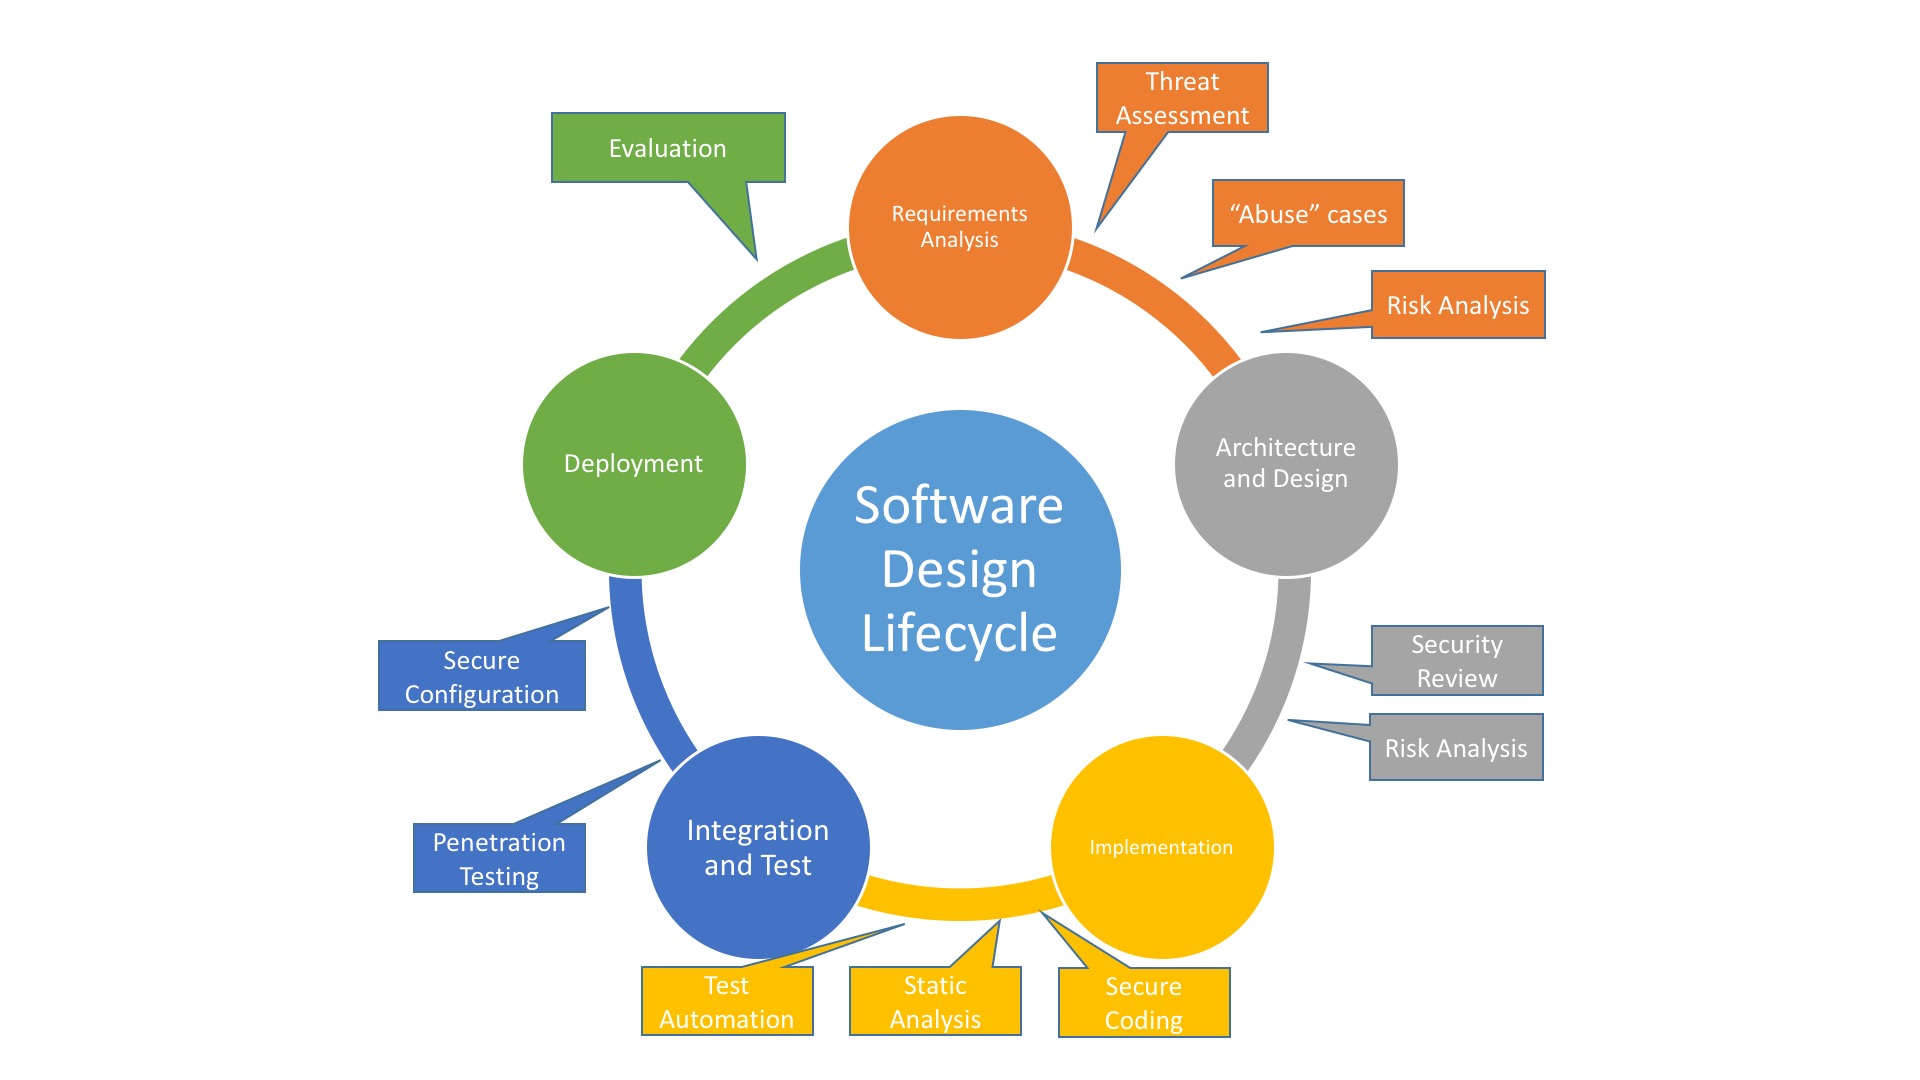 Security processes superimposed over the software design lifecycle.